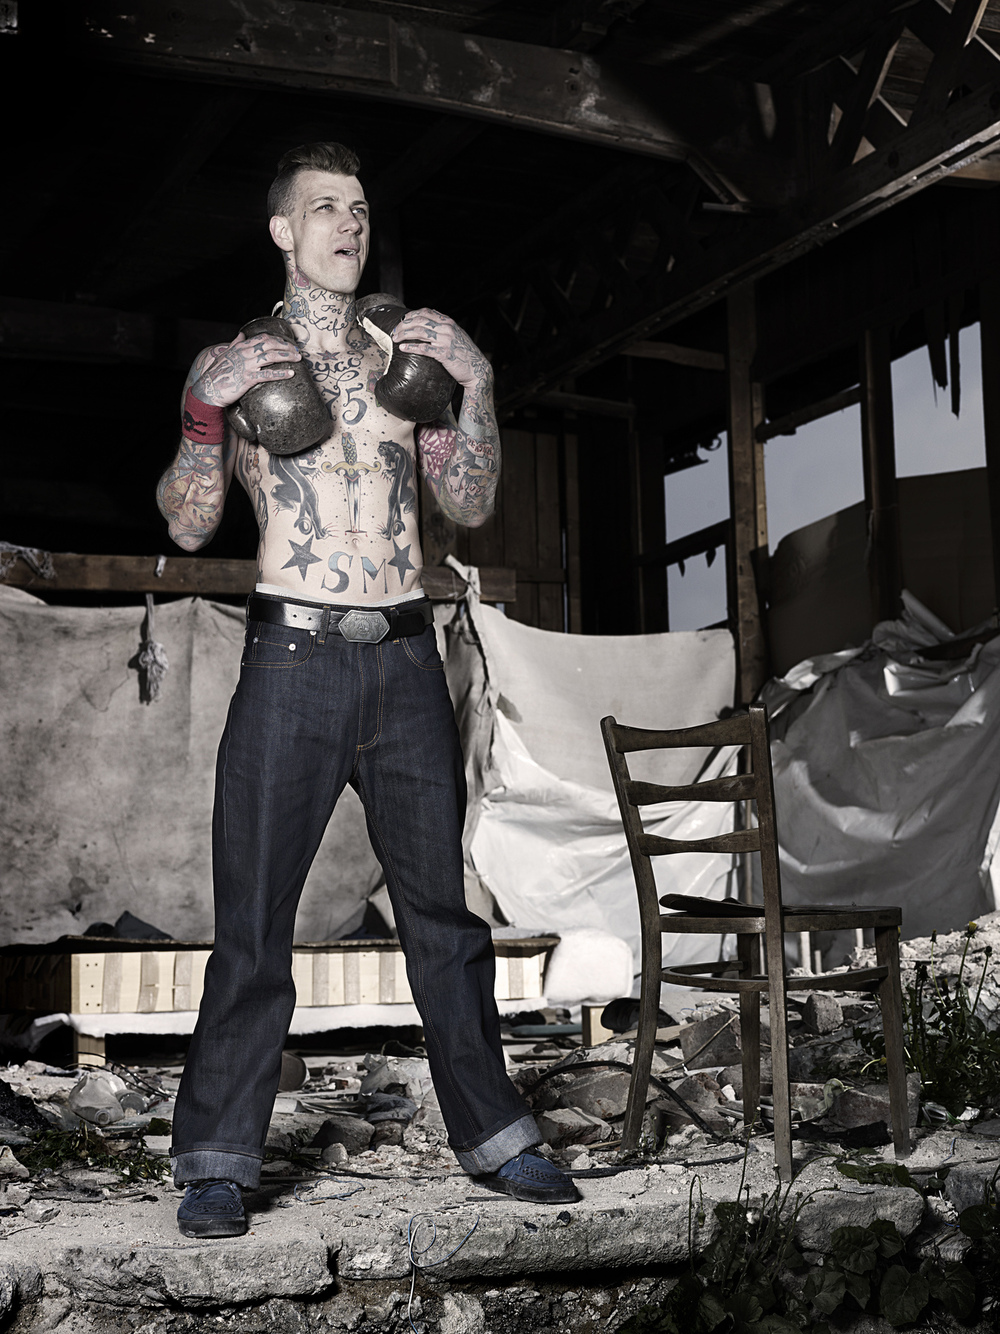 matej tresnak photographer I director - Lucky Hazzard denims